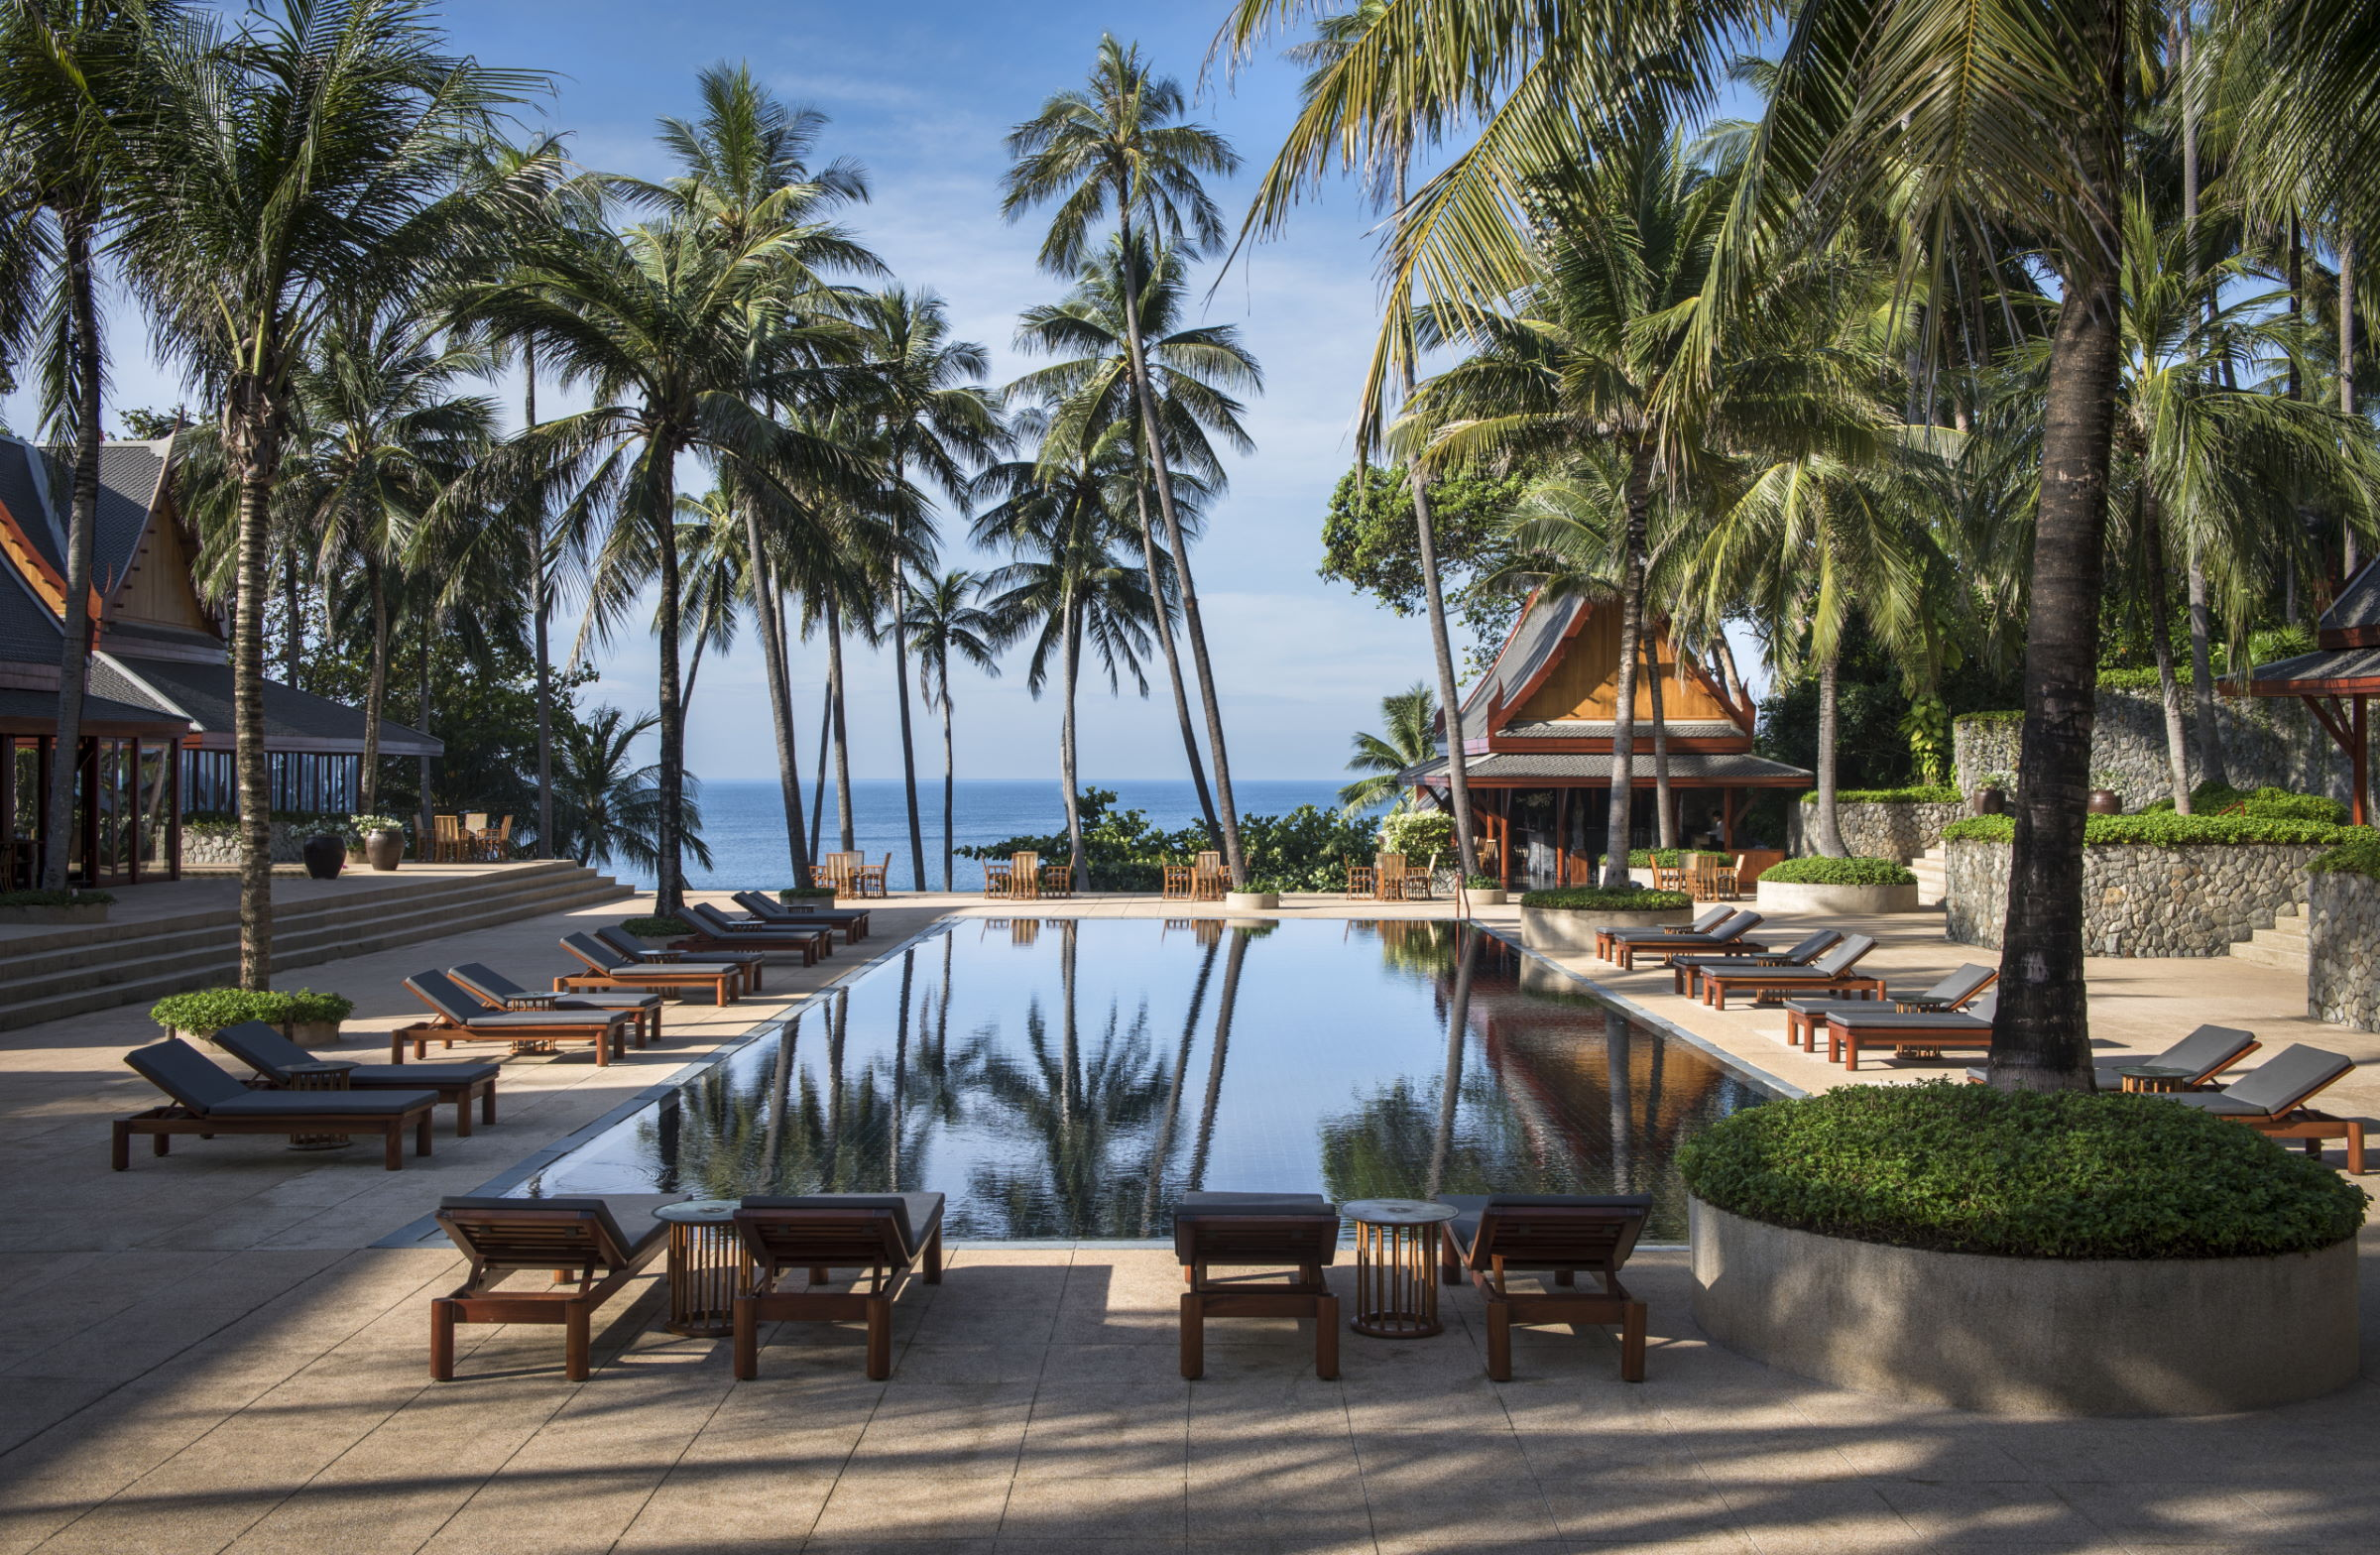 Amanpuri Reopens On 1 August With A Host Of New Experiences